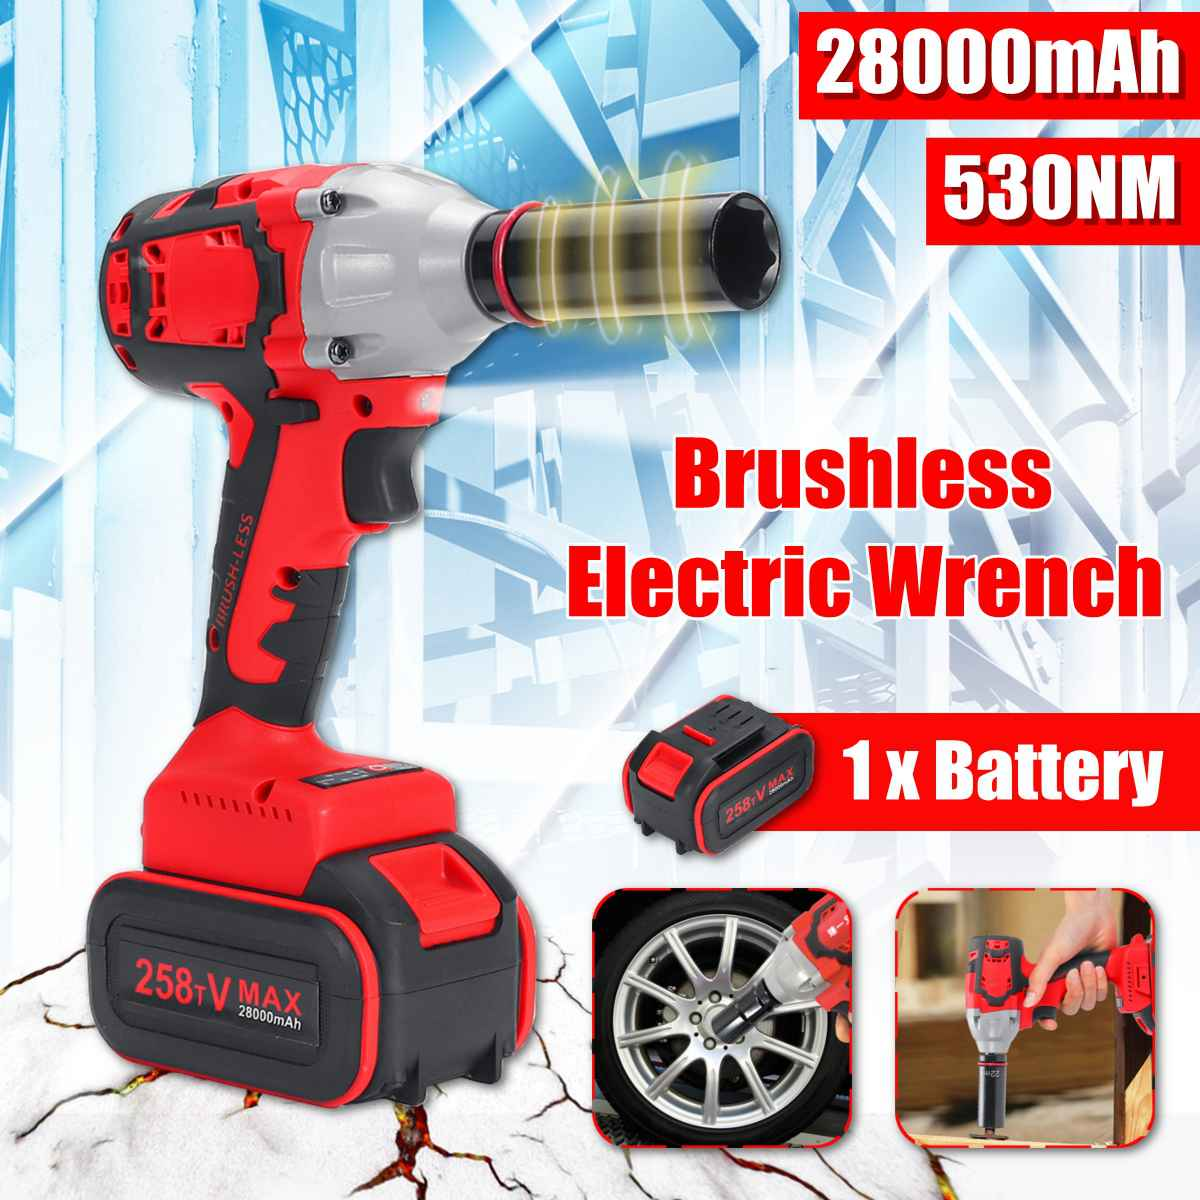 28000mAh 530Nm Cordless Electric Wrench 1/2'' Impact Wrench Power Driver Wrench Socket Tools Set W/2 Rechargeable Battery